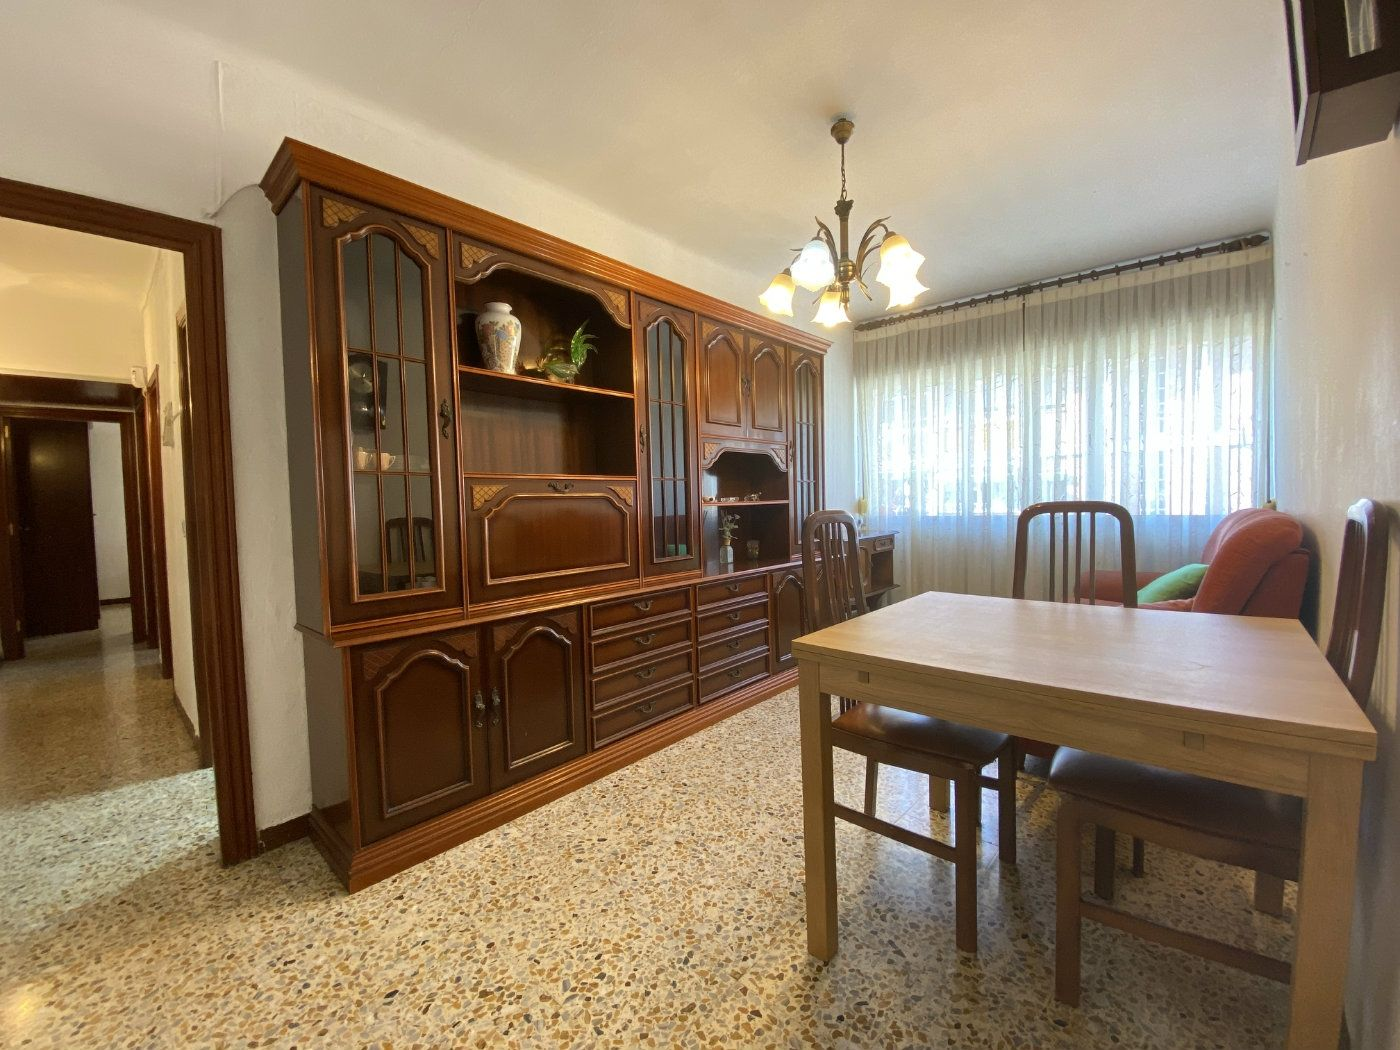 Flat in Sant Ildefons. Oportunidad con ascensor